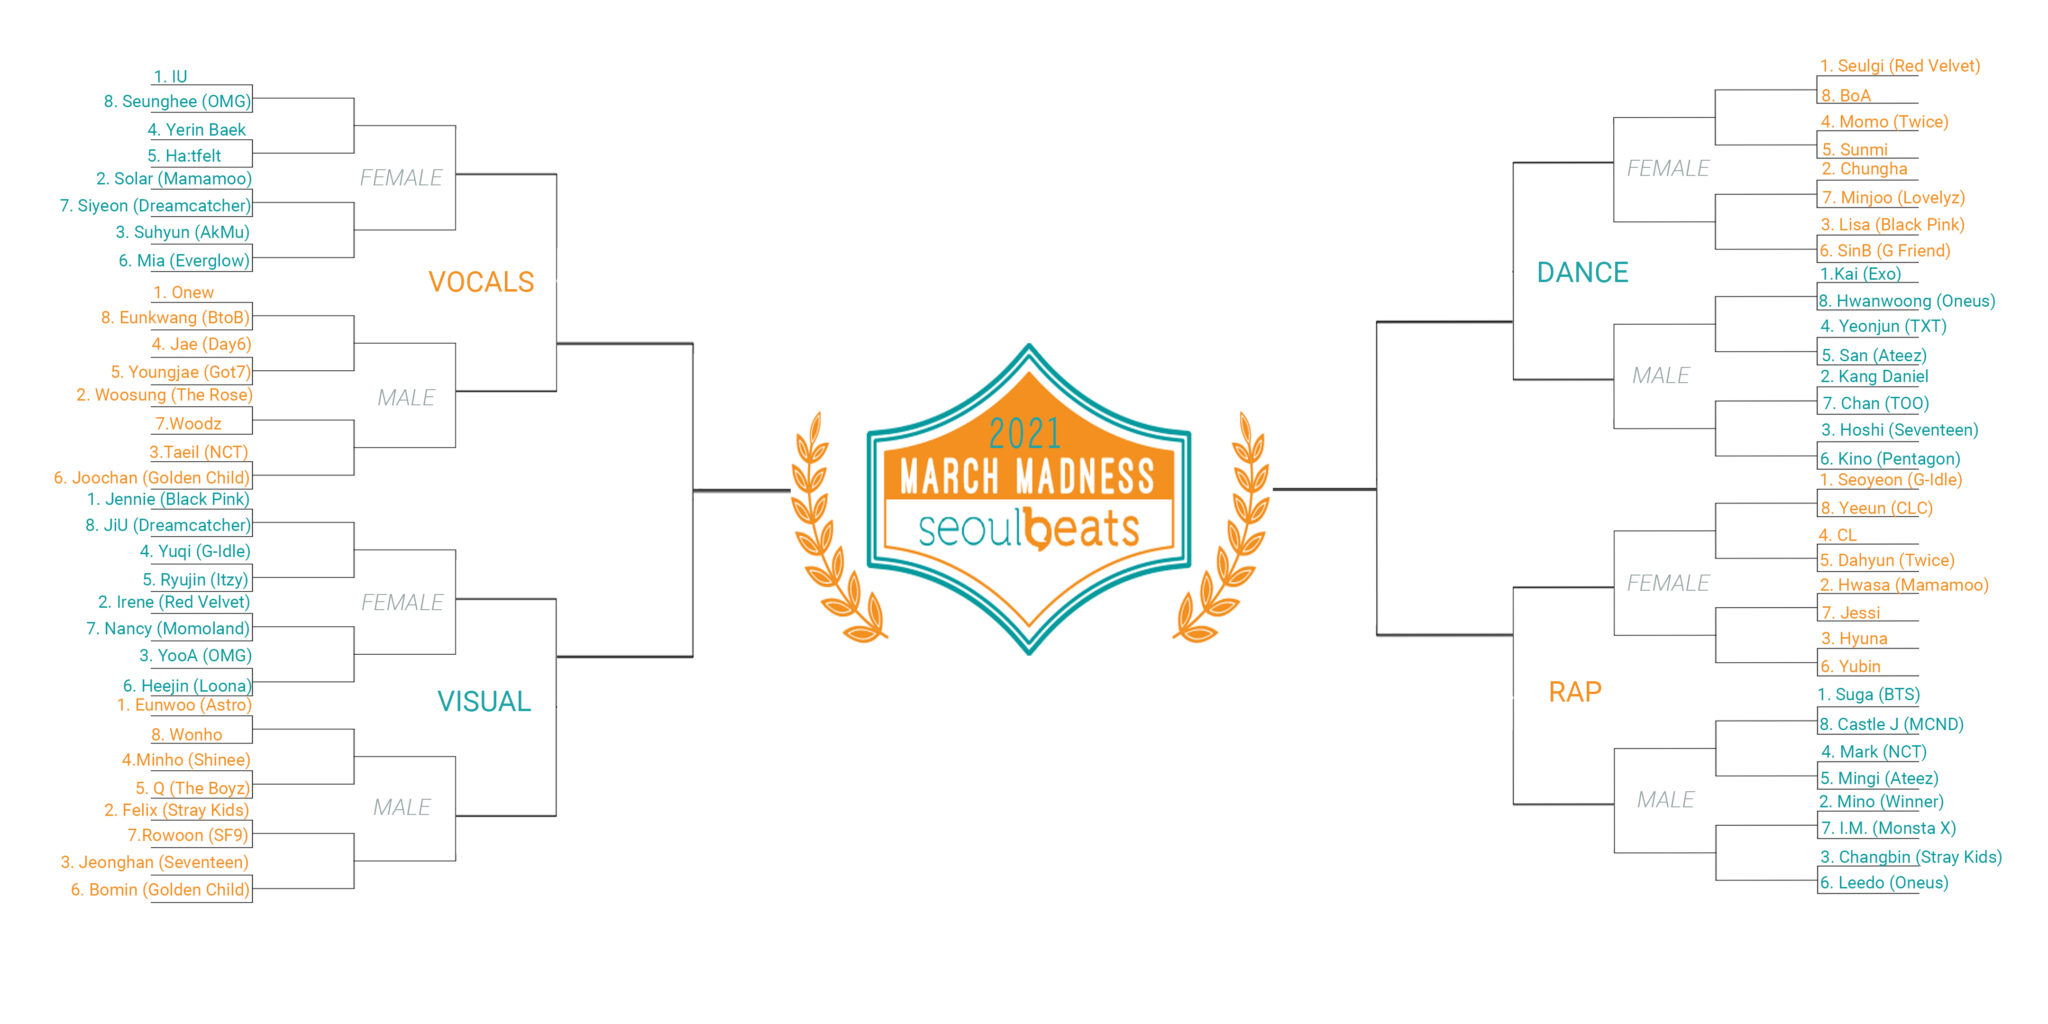 Seoulbeats March Madness 2021: Are You Ready?